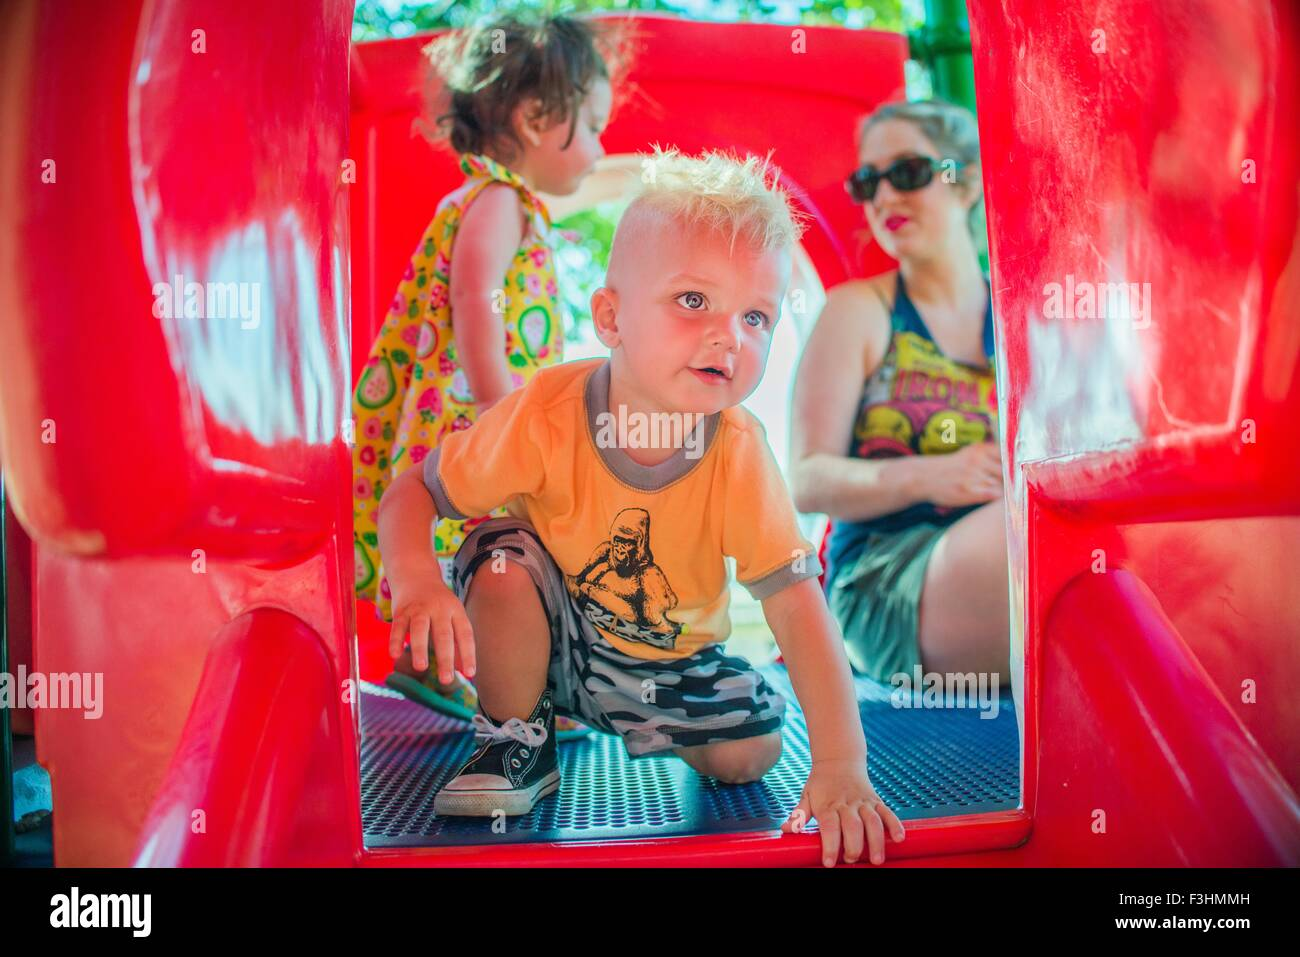 Mother and children playing on red playground slide Stock Photo